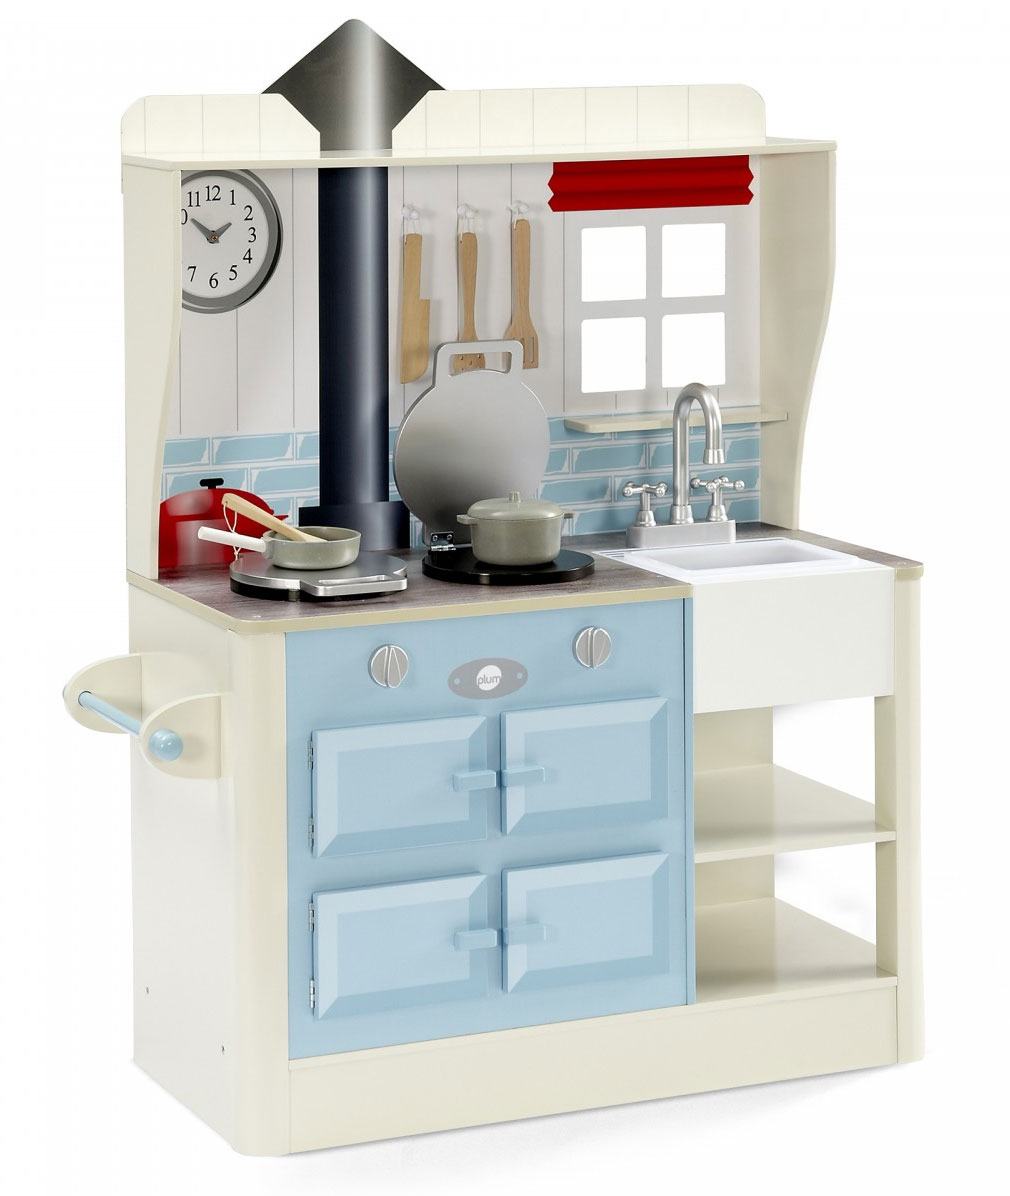 Plum Country Farmhouse Kids Kitchen on Sale! Ships Aus-Wide or Pickup